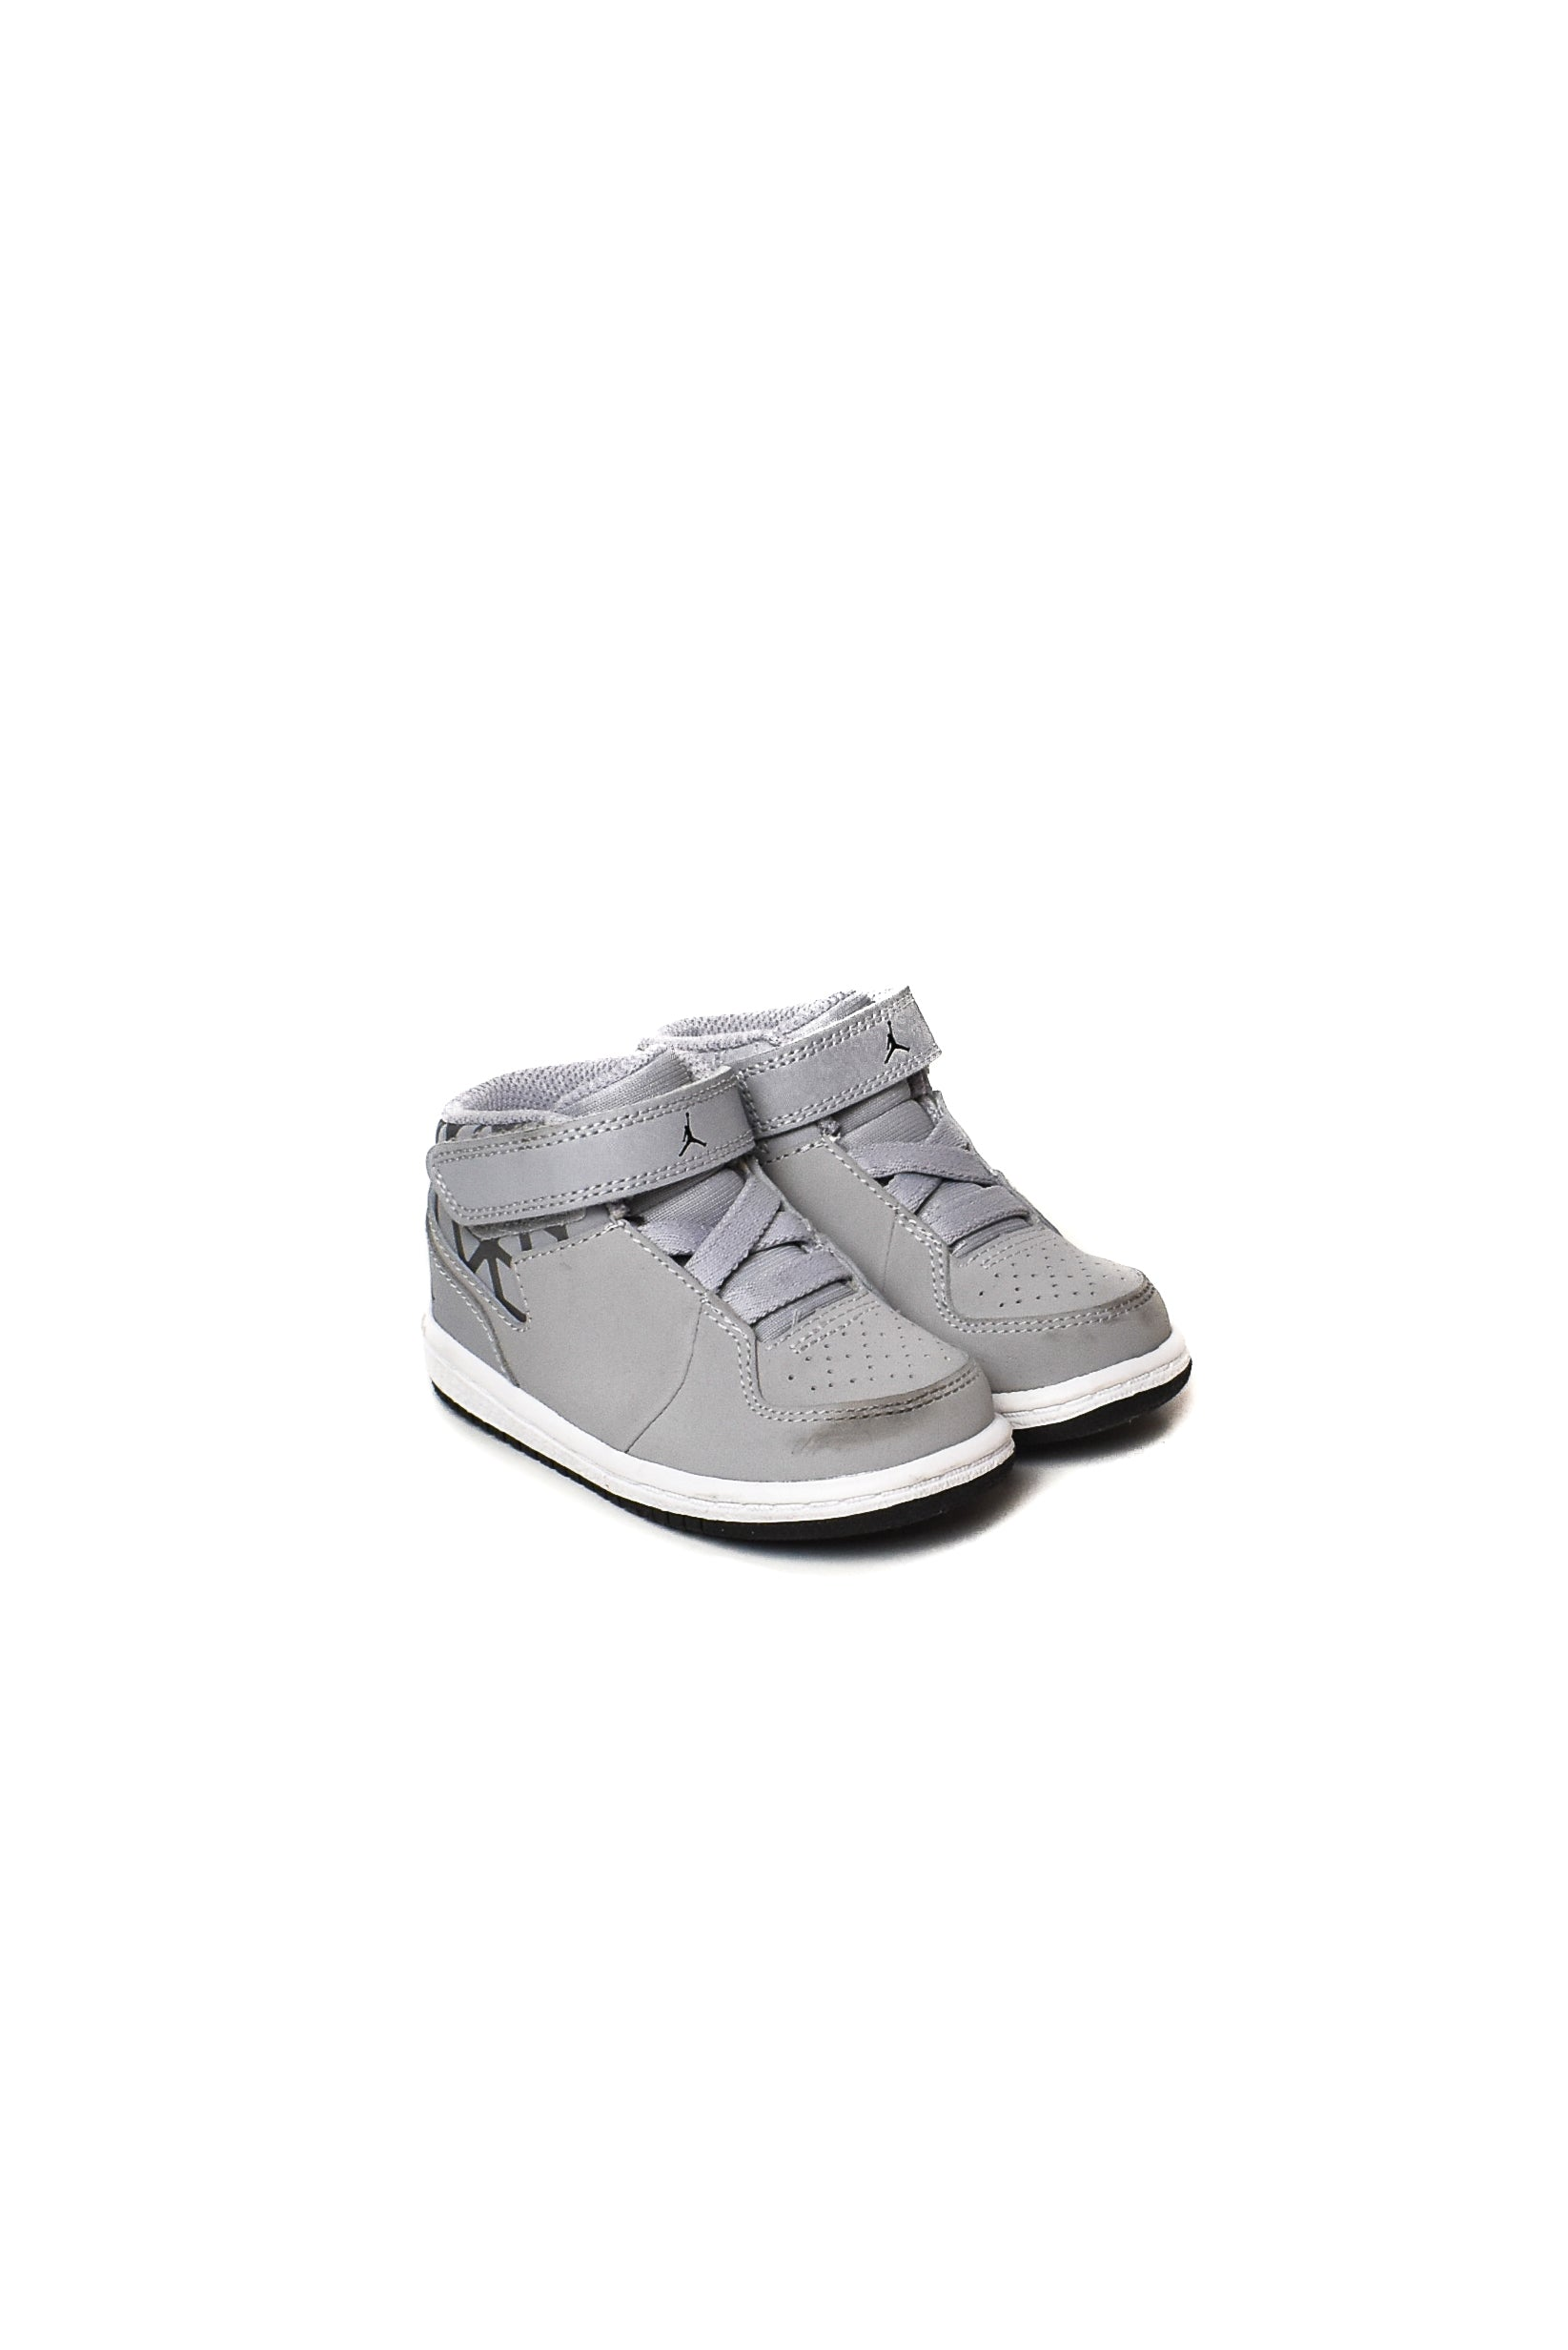 10008064 Nike Baby ~ Sneakers 18-24M (EU 22) at Retykle